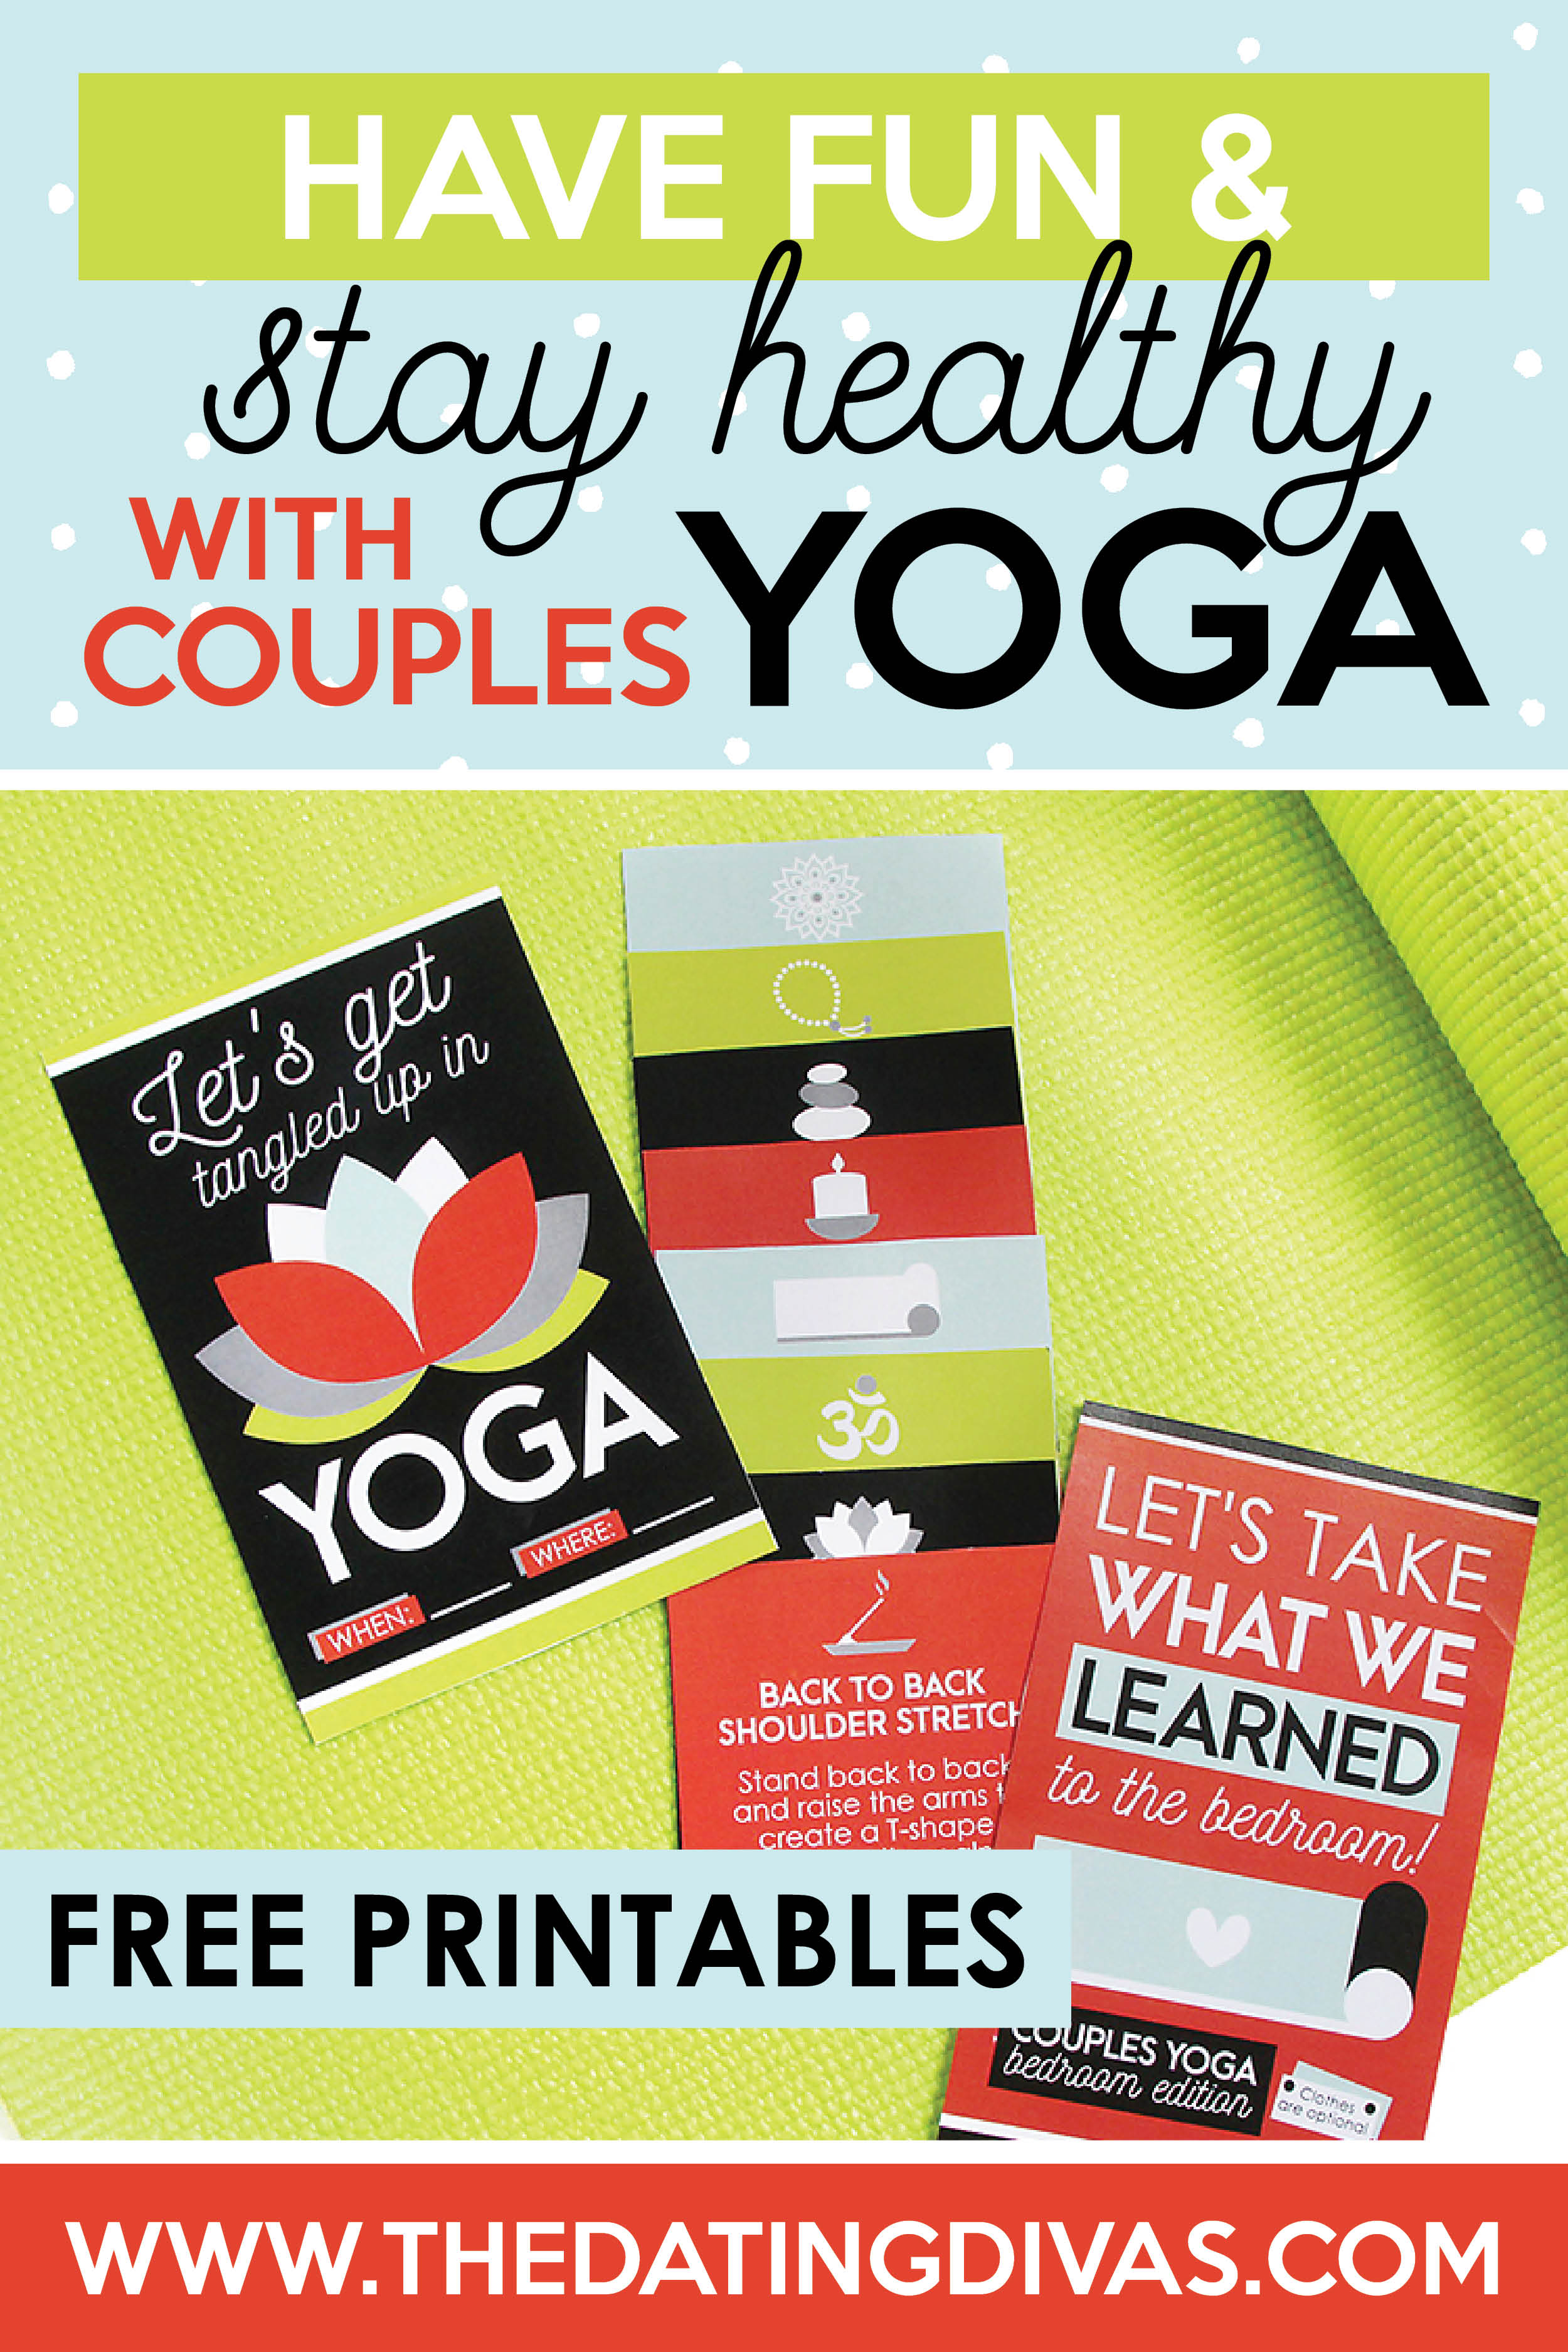 A fun and unique way to stay healthy while keeping the intimacy alive doing couples yoga! Included are cute invites and yoga poses for 2. #couplesyoga #yogadatenight